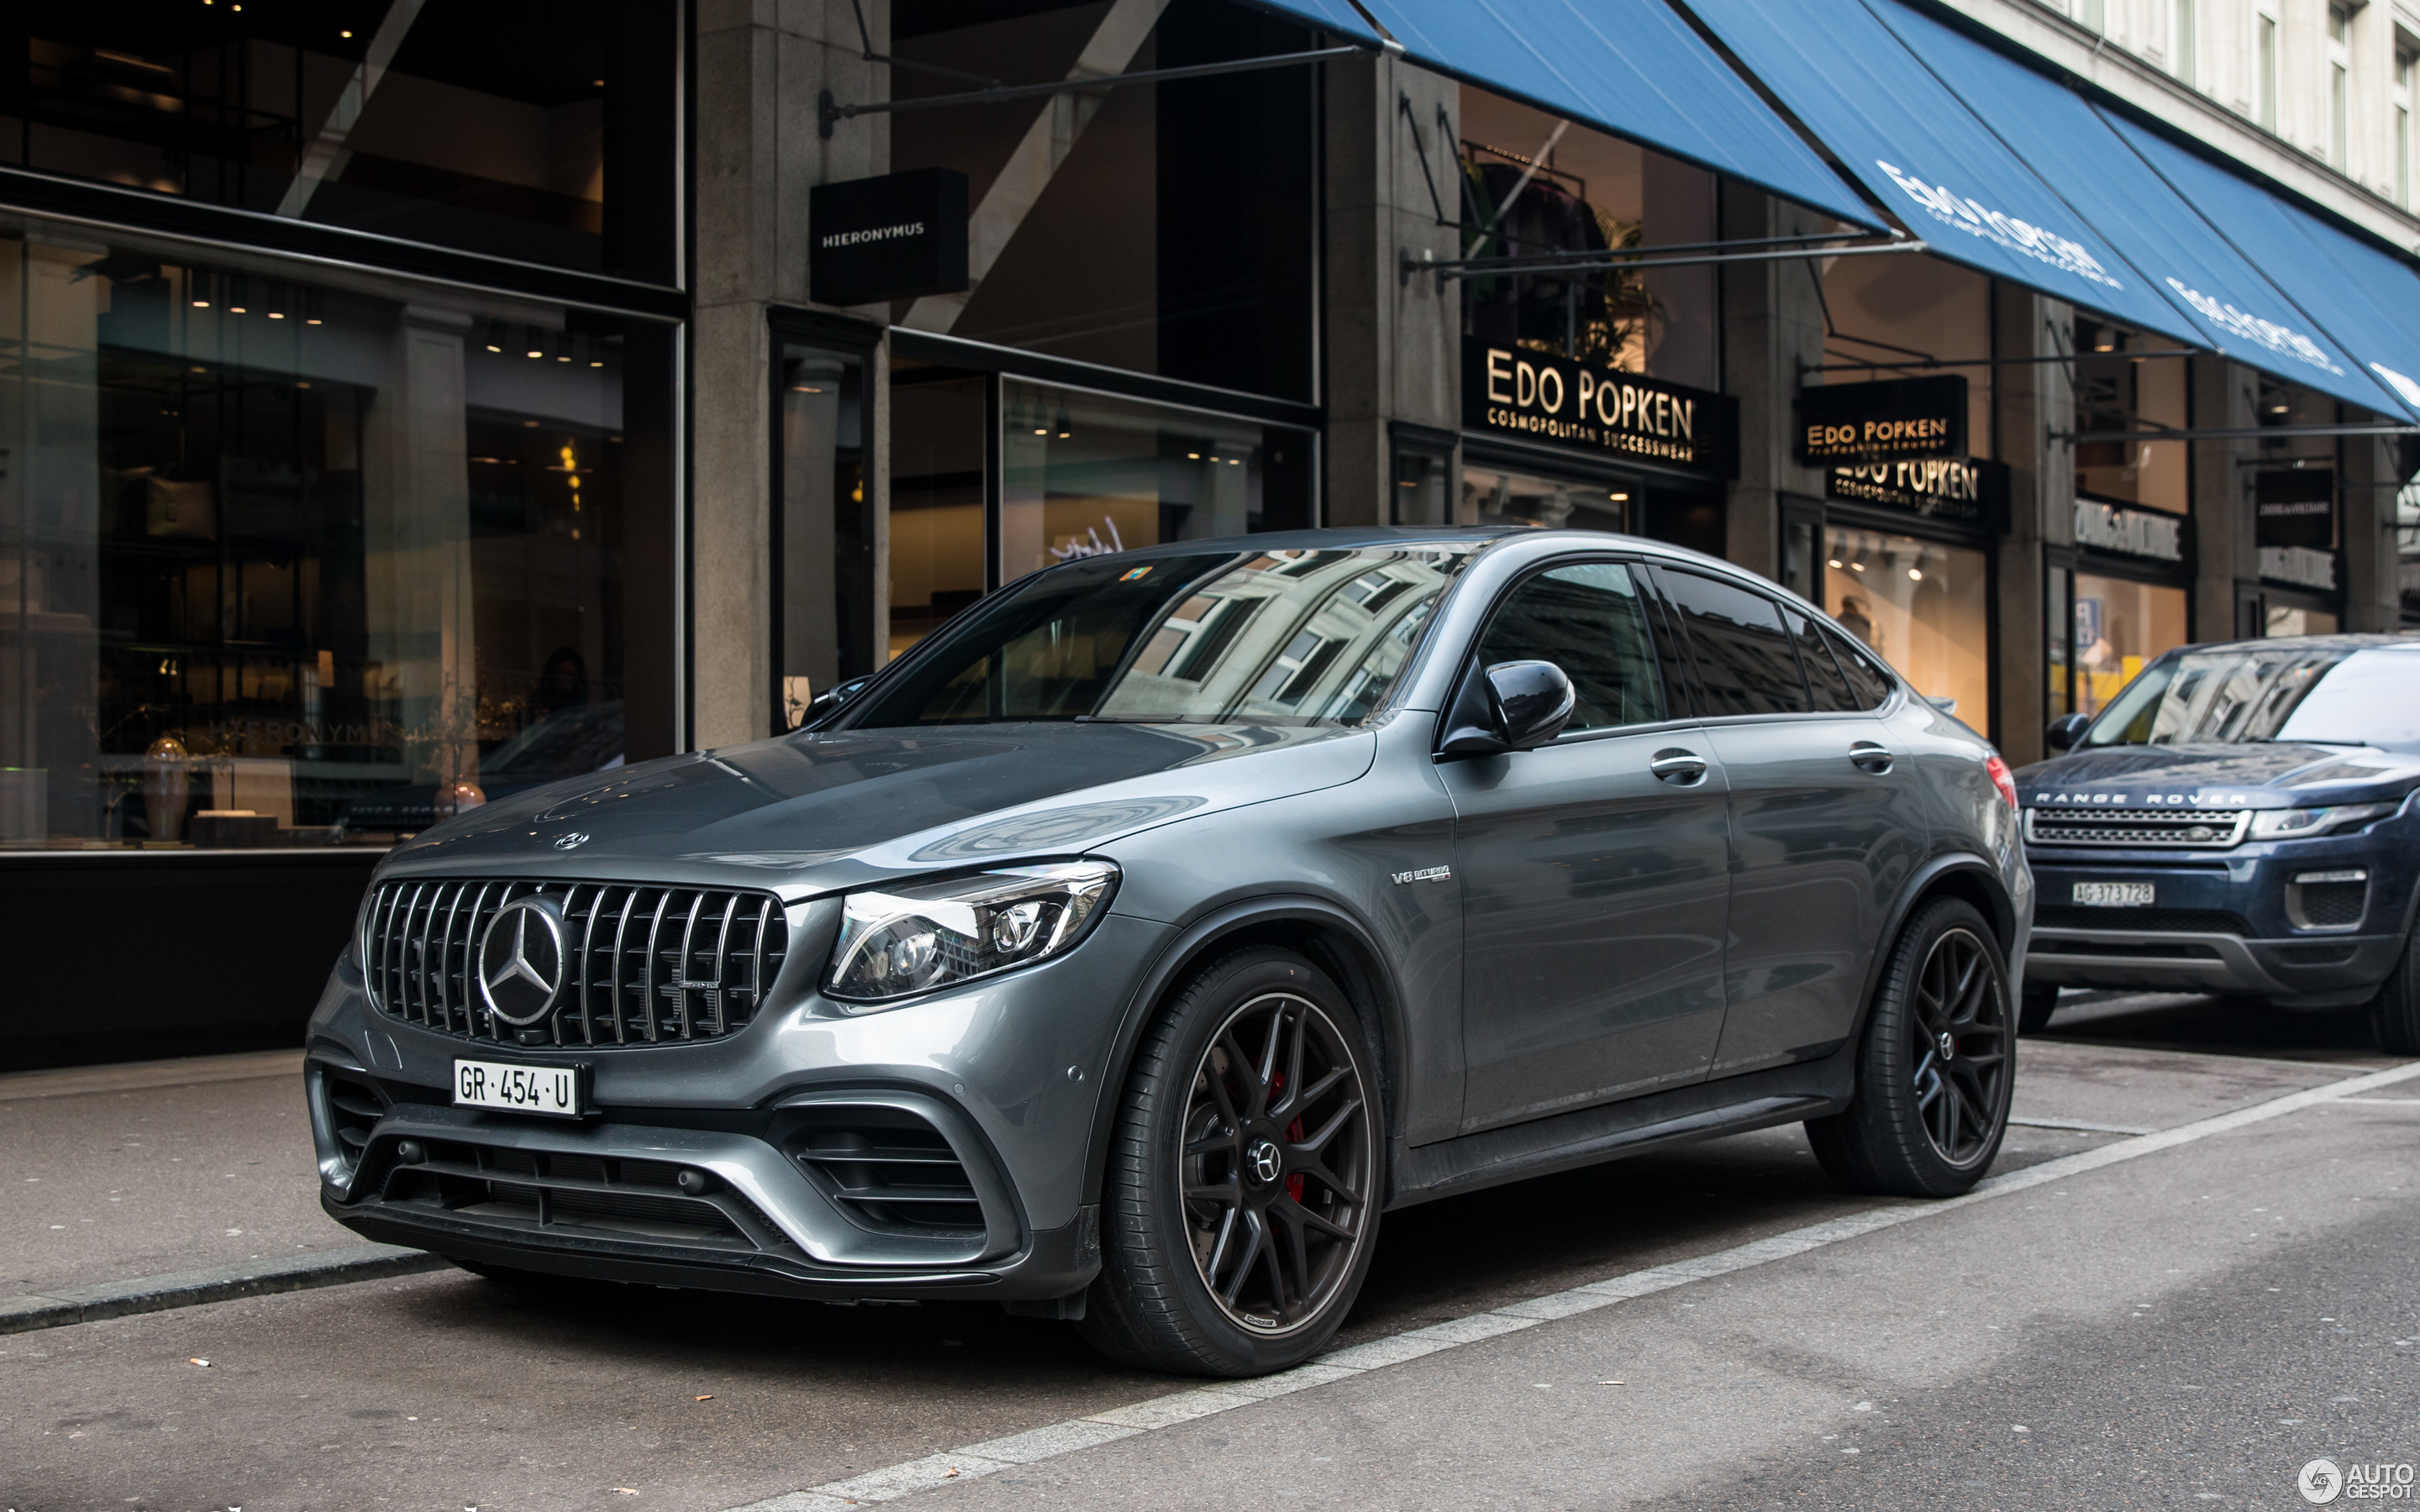 https://ag-spots-2018.o.auroraobjects.eu/2018/02/10/other/2880-1800-crop-mercedes-amg-glc-63-s-coupe-c253-c752310022018201404_1.jpg